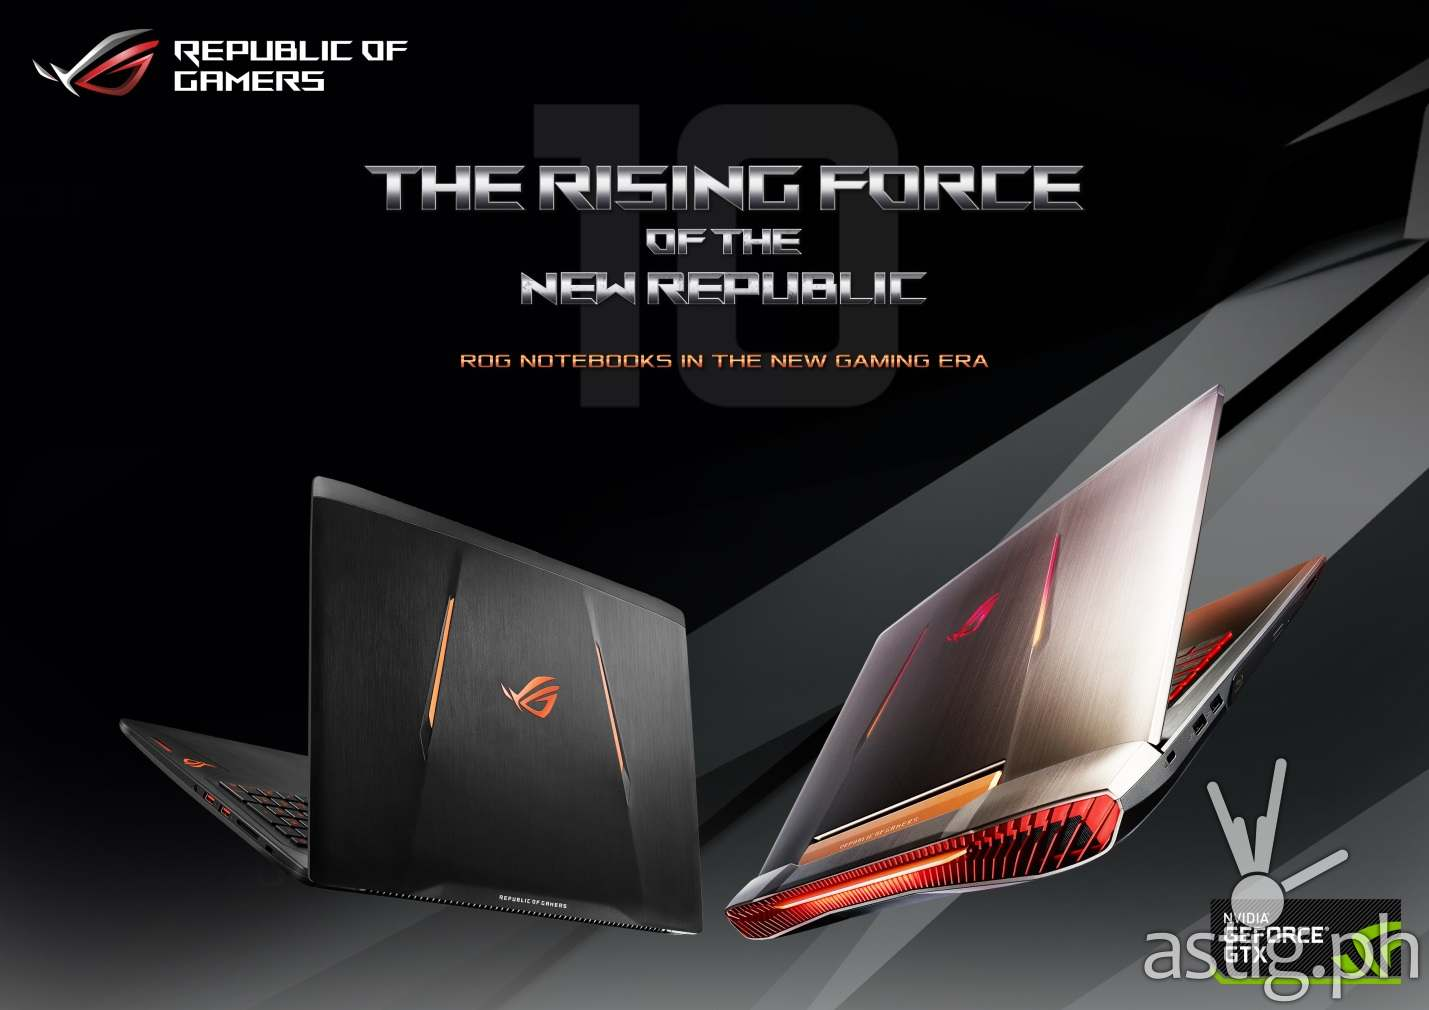 ASUS ROG G752 and ASUS ROG Strix GL502 gaming laptops